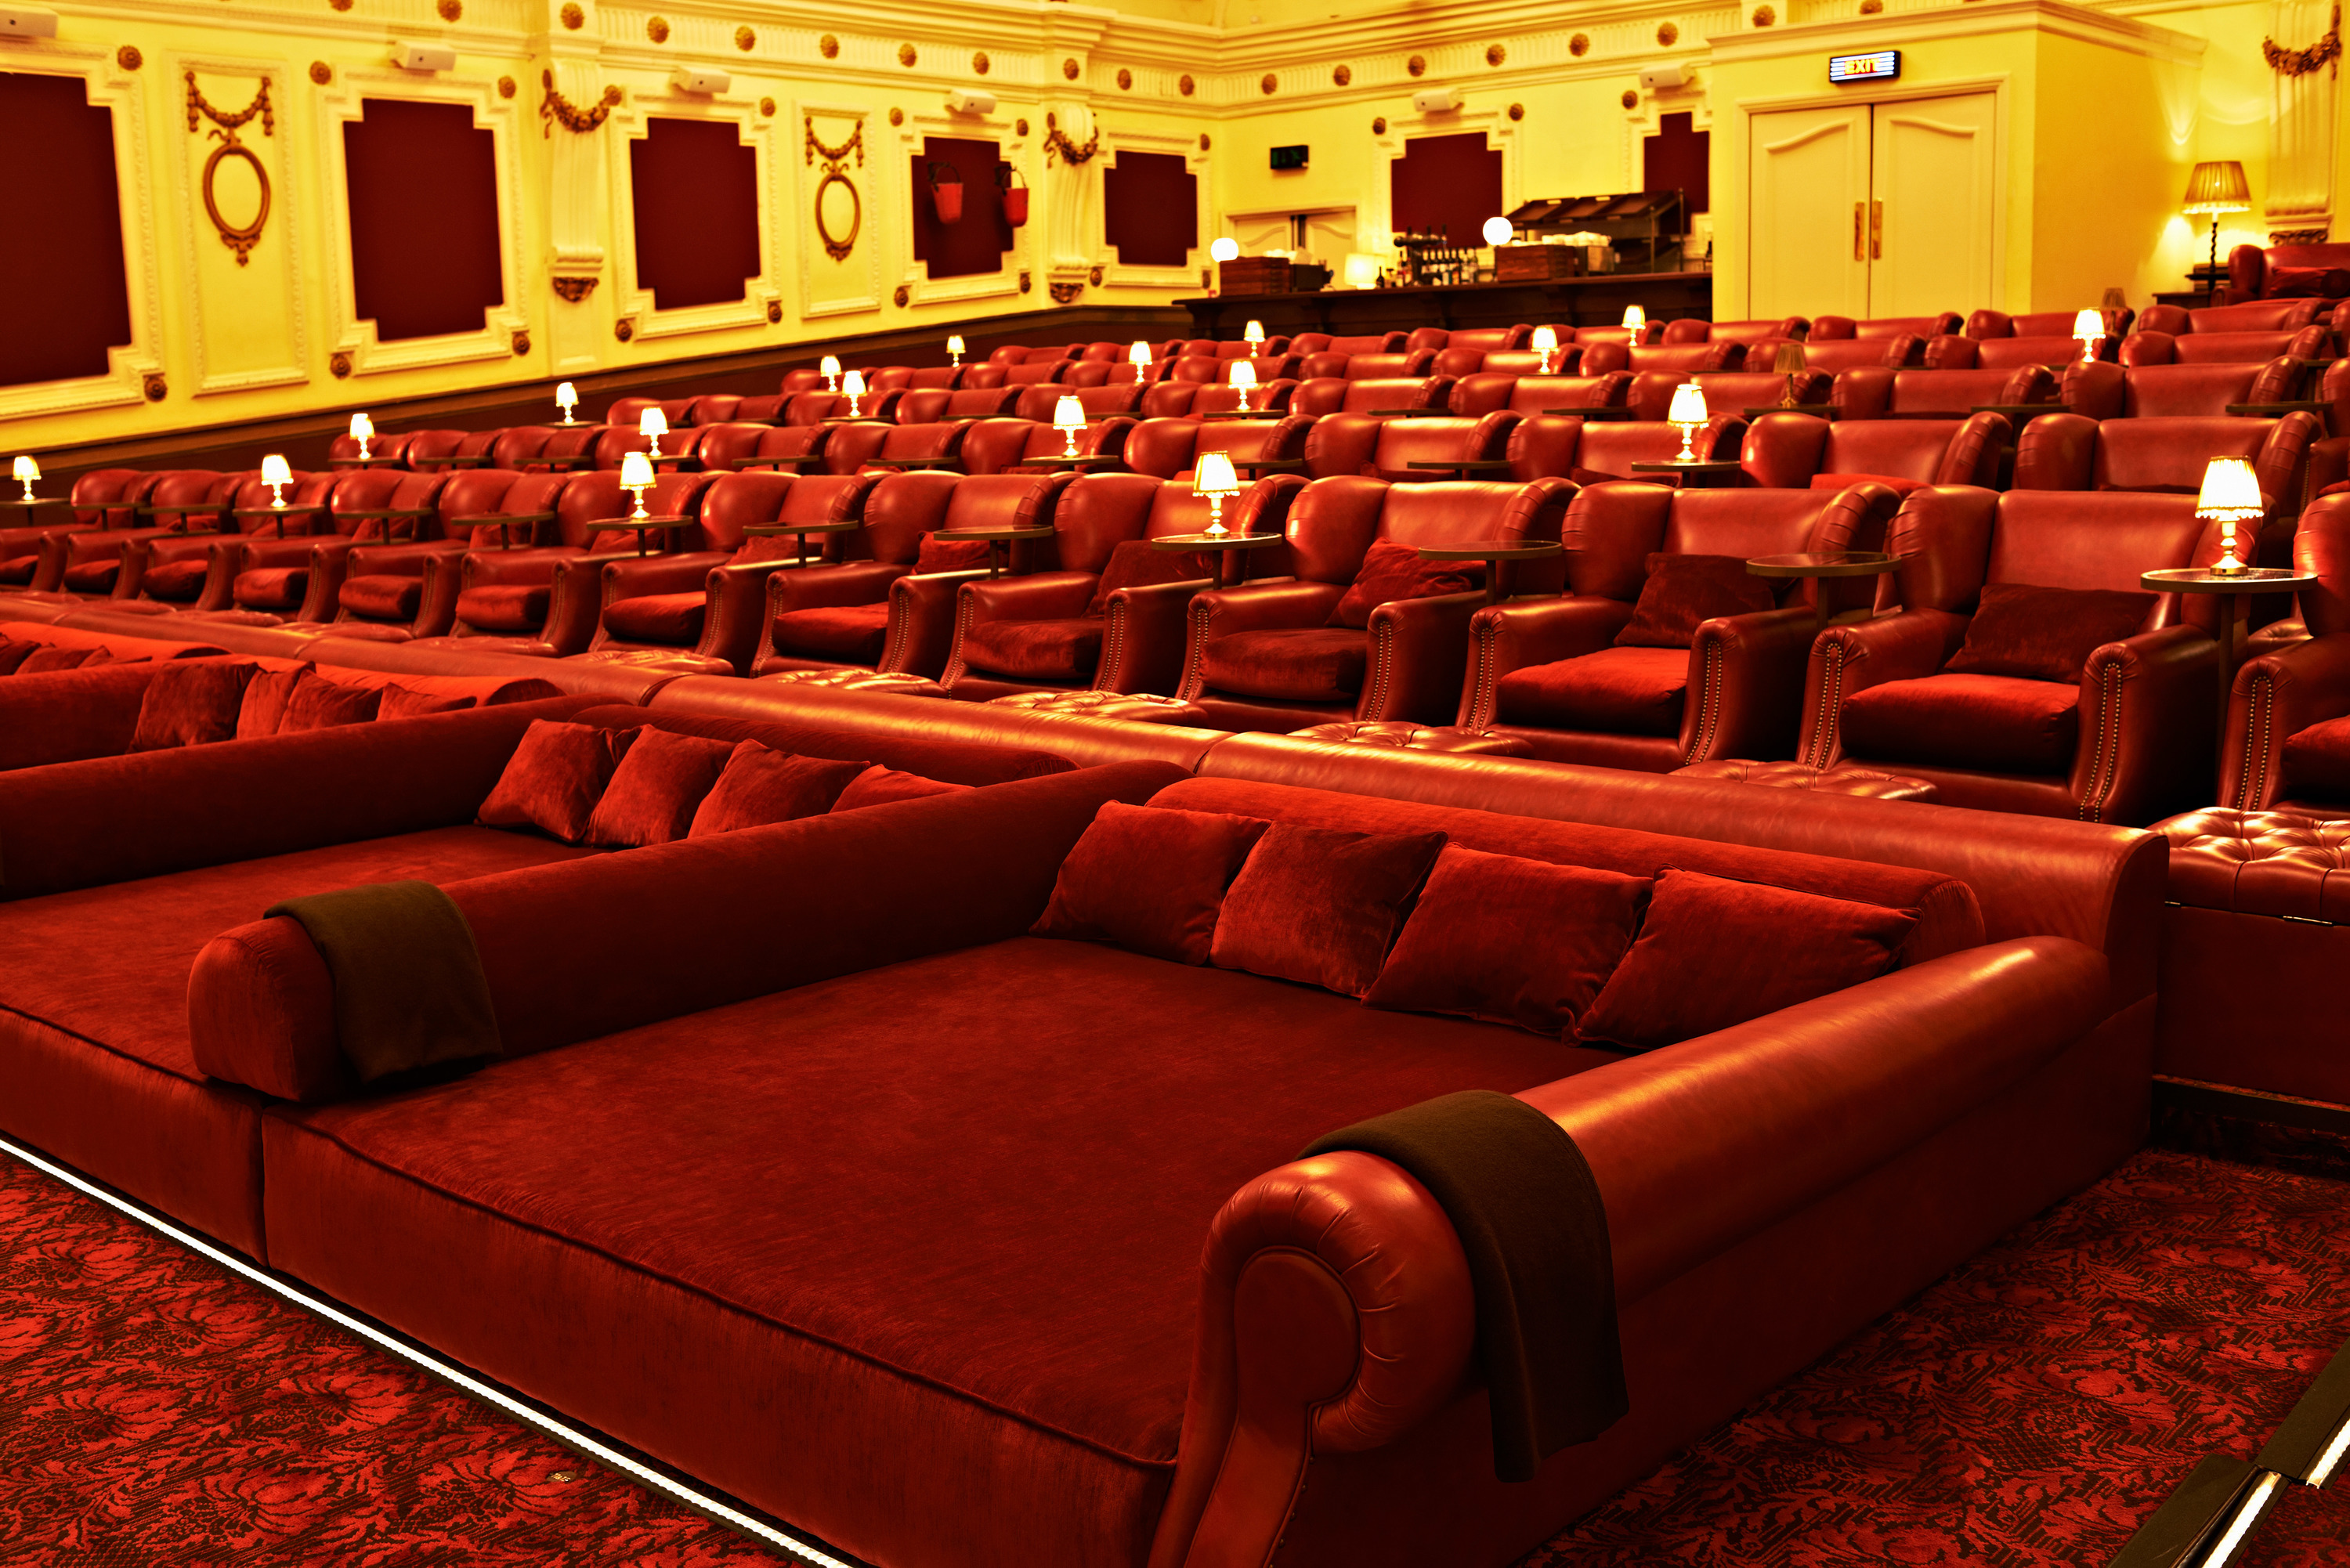 Cinema Listings and Cinema Times - Find Local Cinemas ...